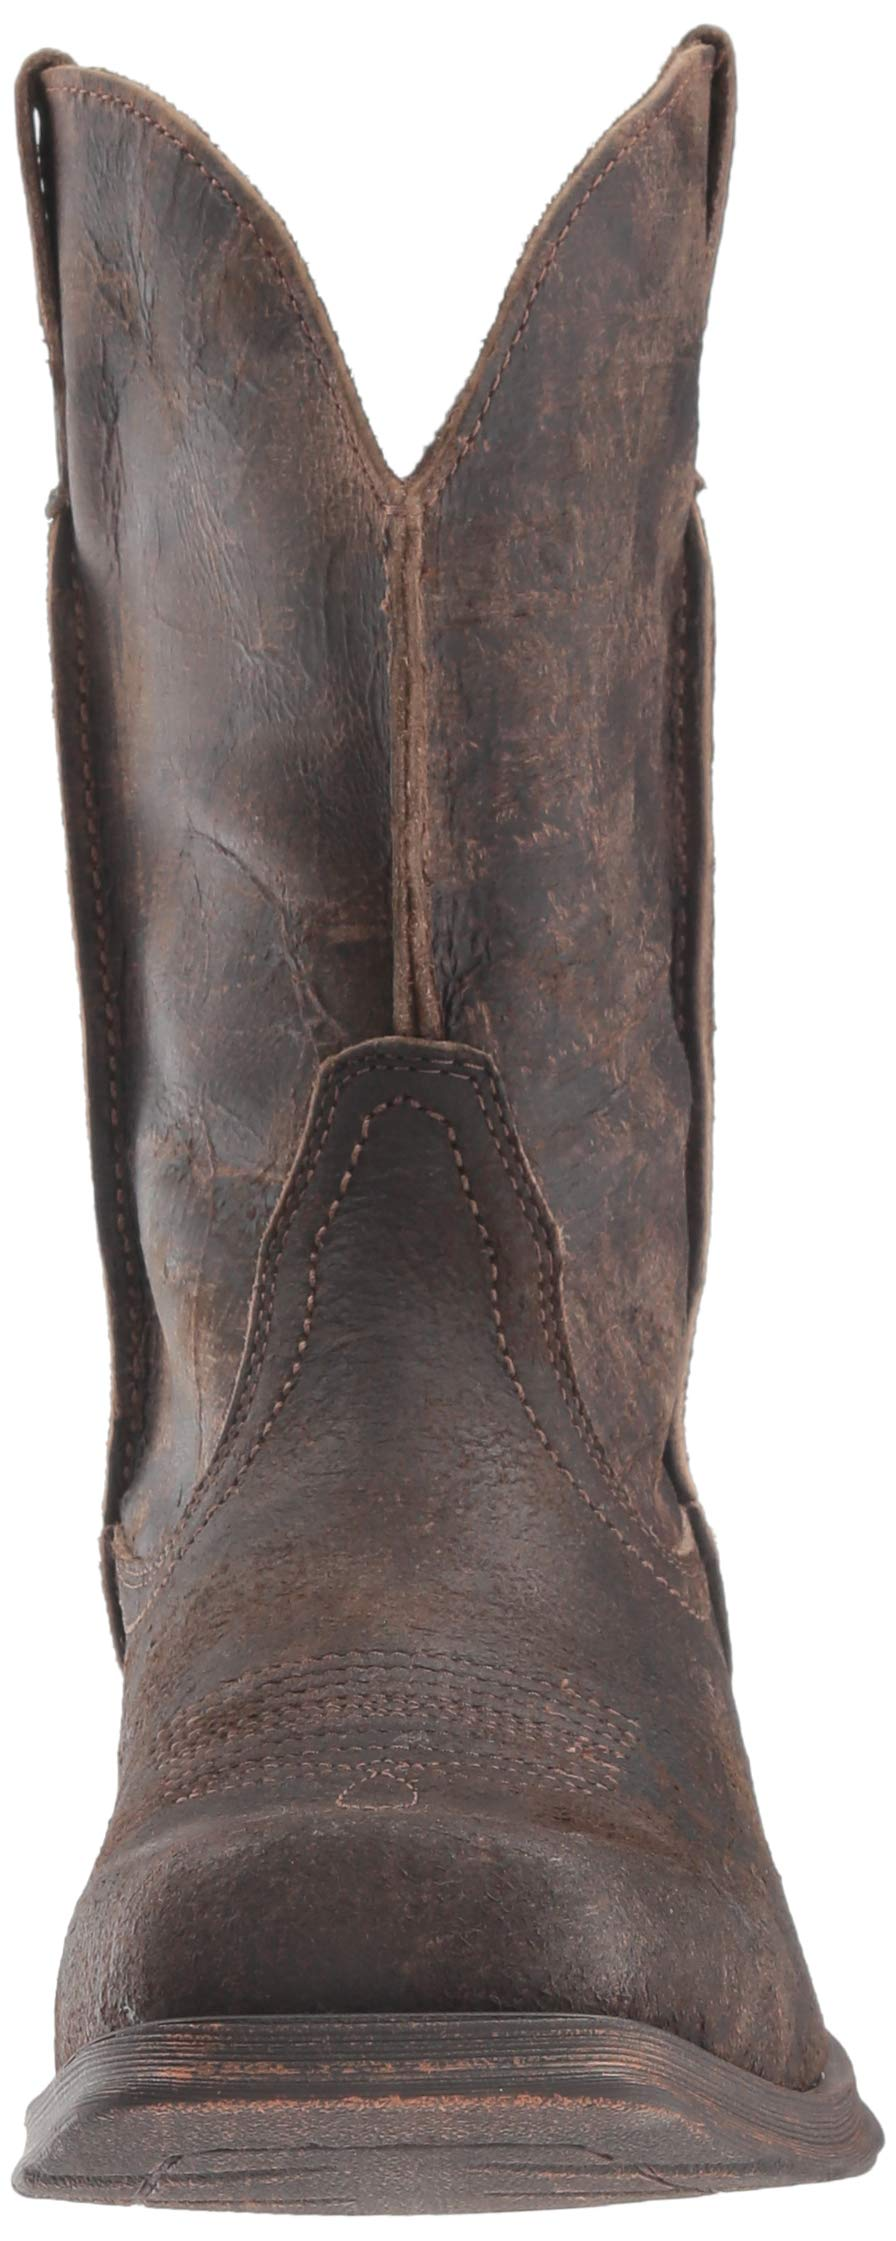 Ariat Men's Rambler Western Boot, Antiqued Grey, 13 2E US by ARIAT (Image #4)